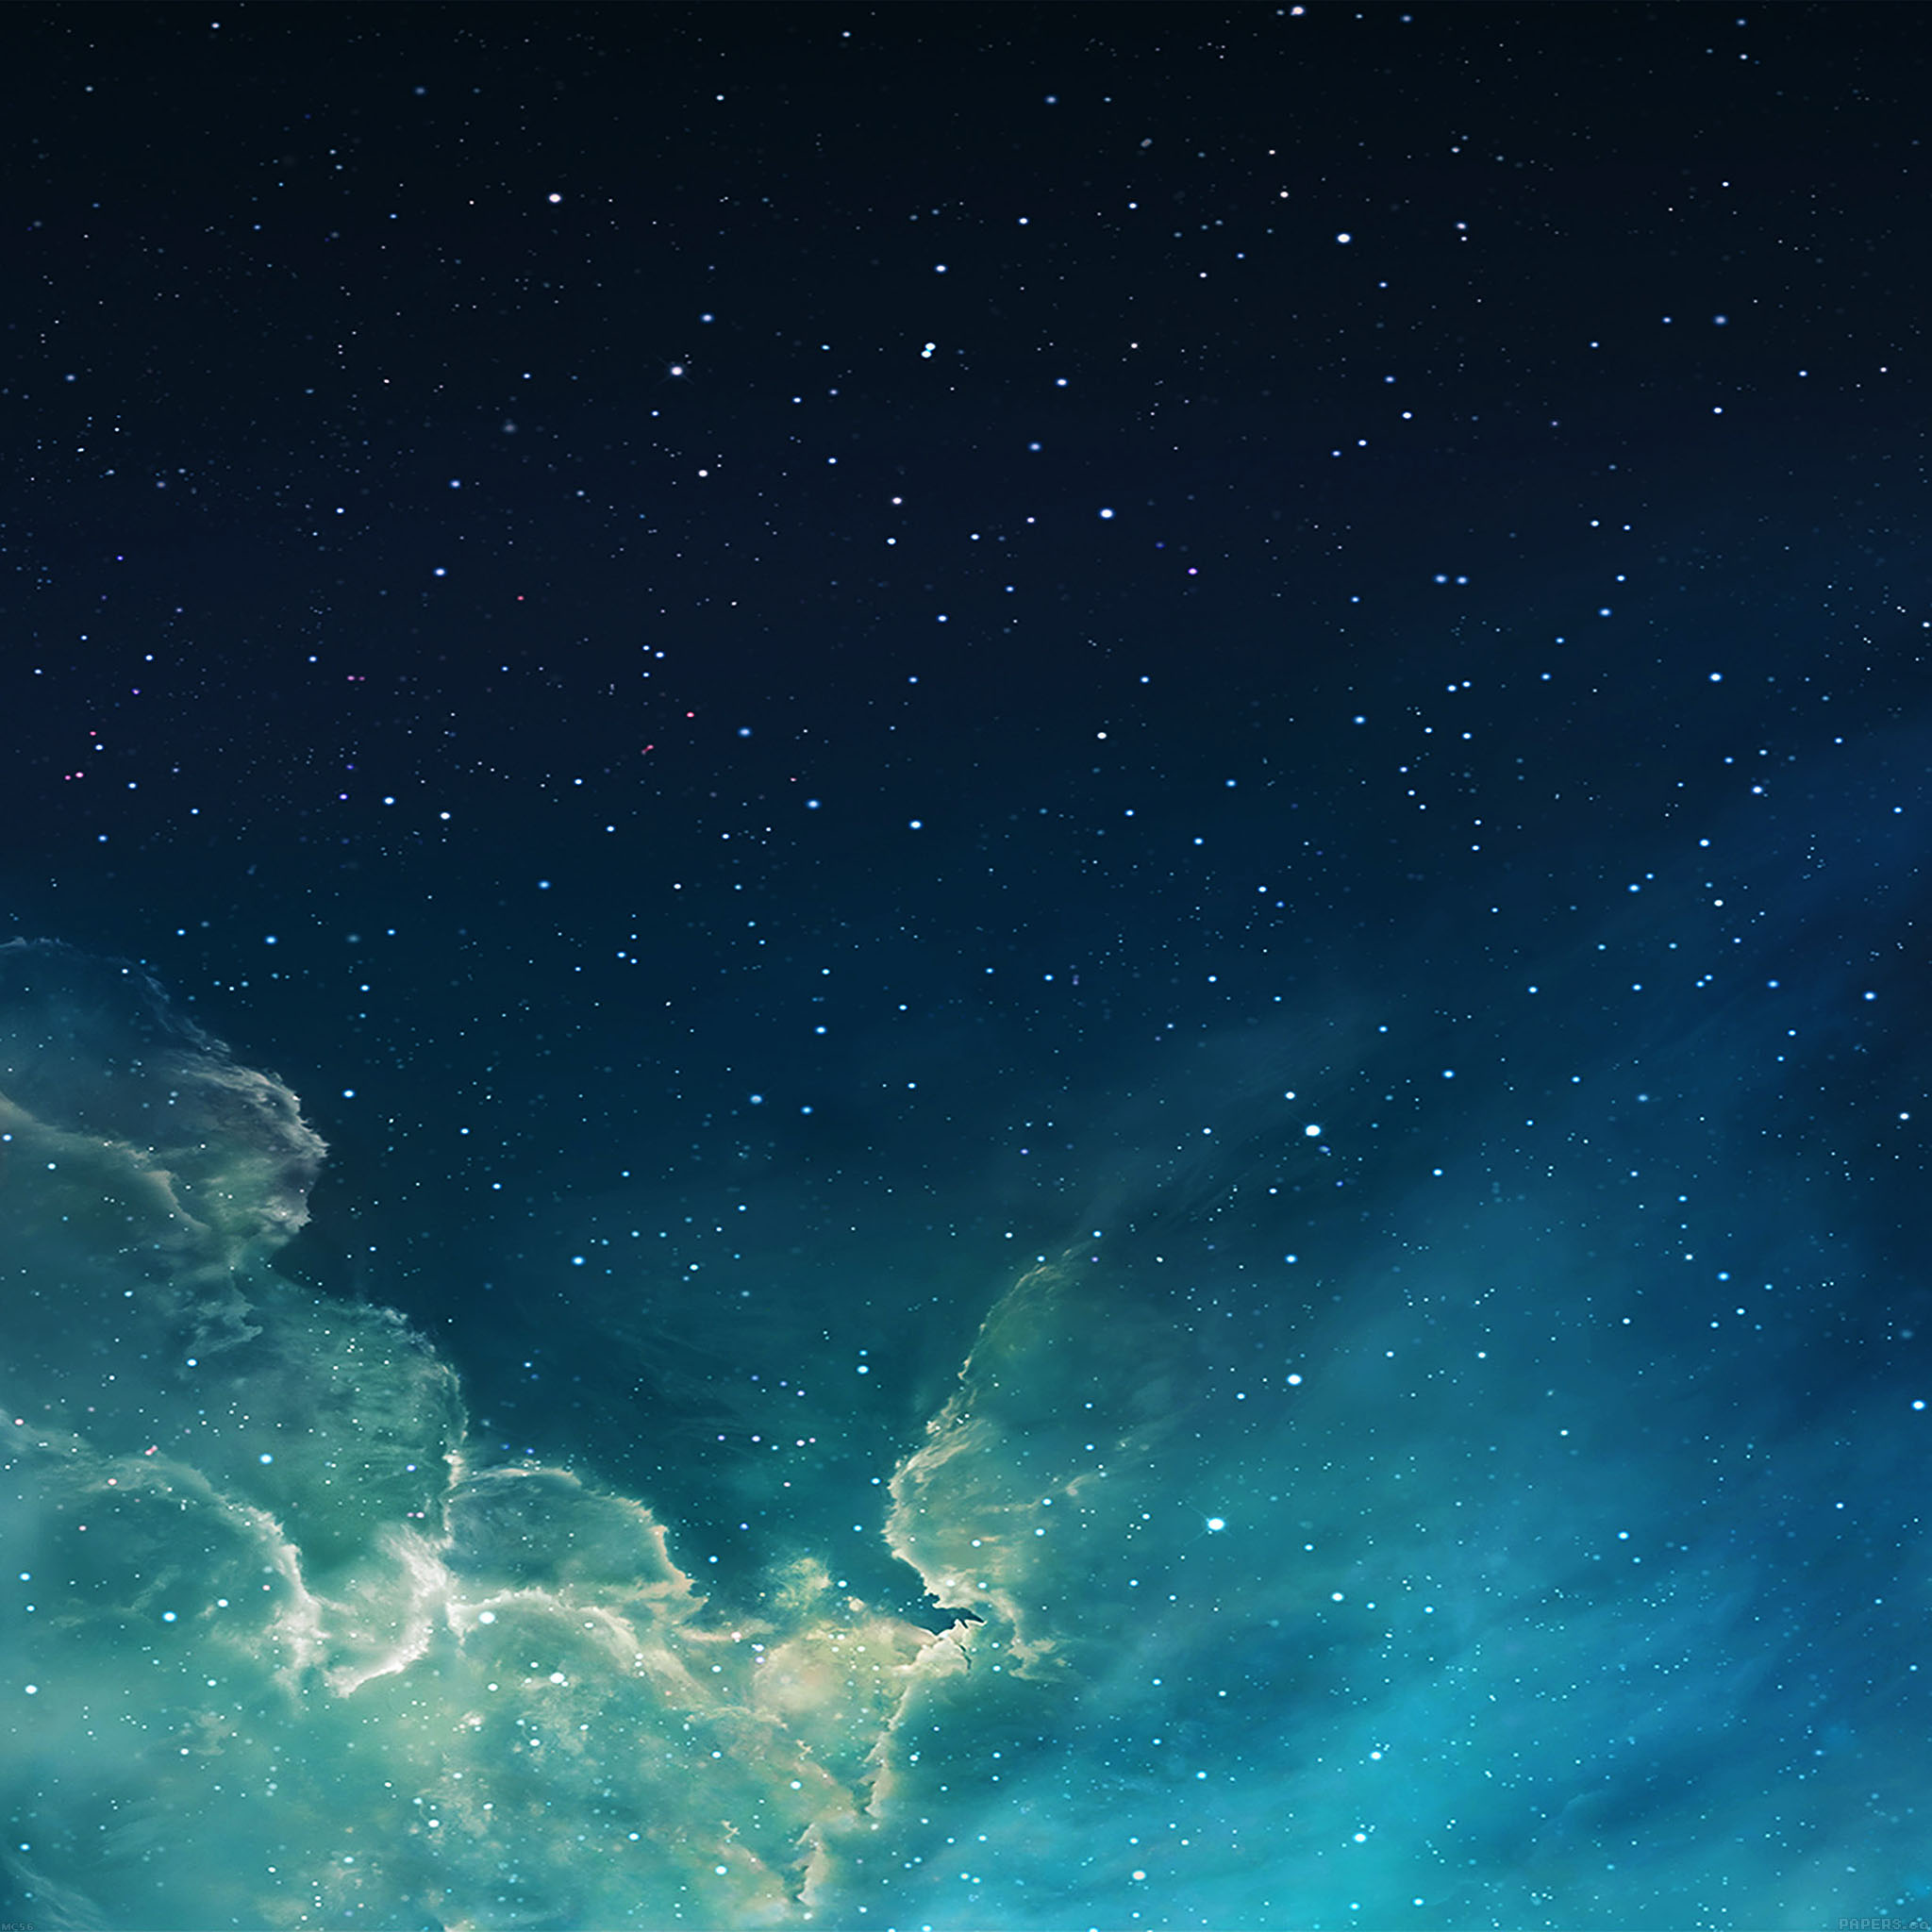 mc56 wallpaper galaxy blue 7 starry star sky   papers co